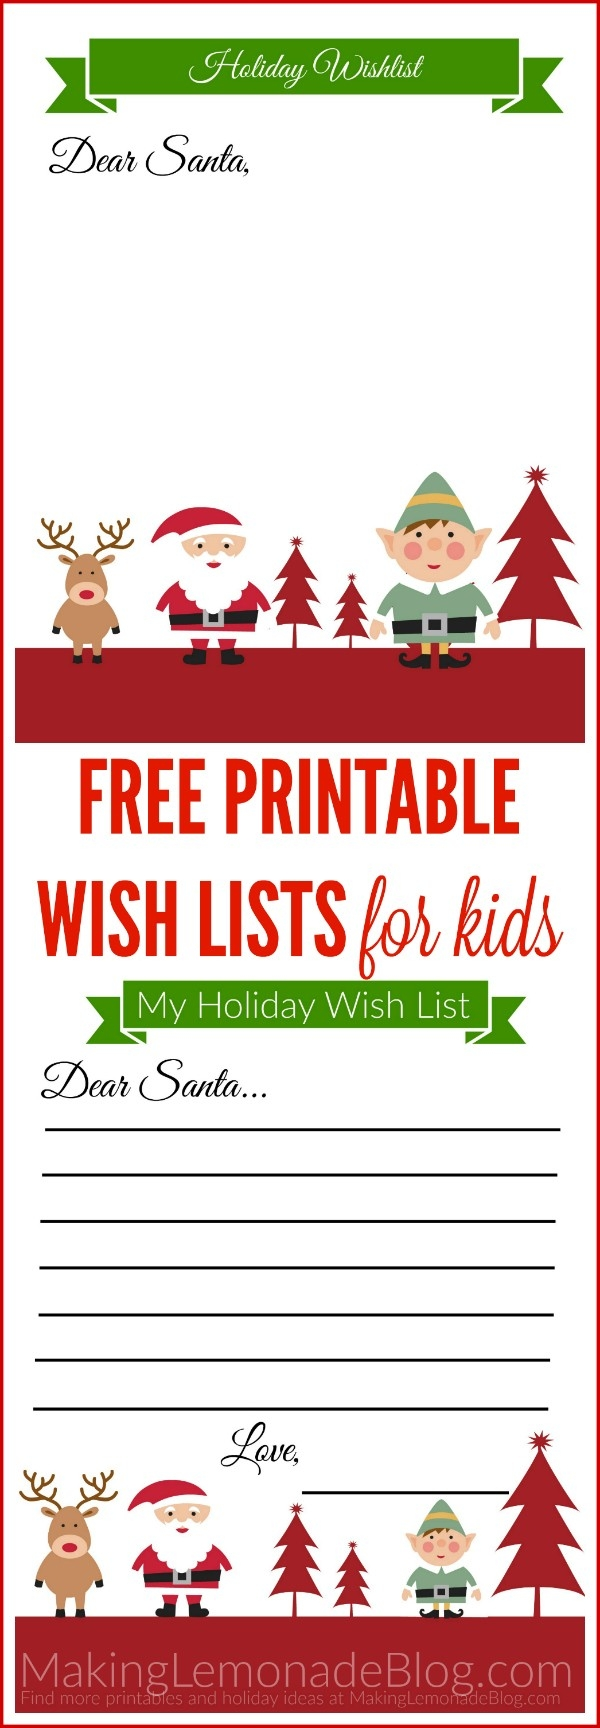 Free Printable Holiday Wish List For Kids | Making Lemonade intended for Free Printable Christmas List Template For Kids 24343